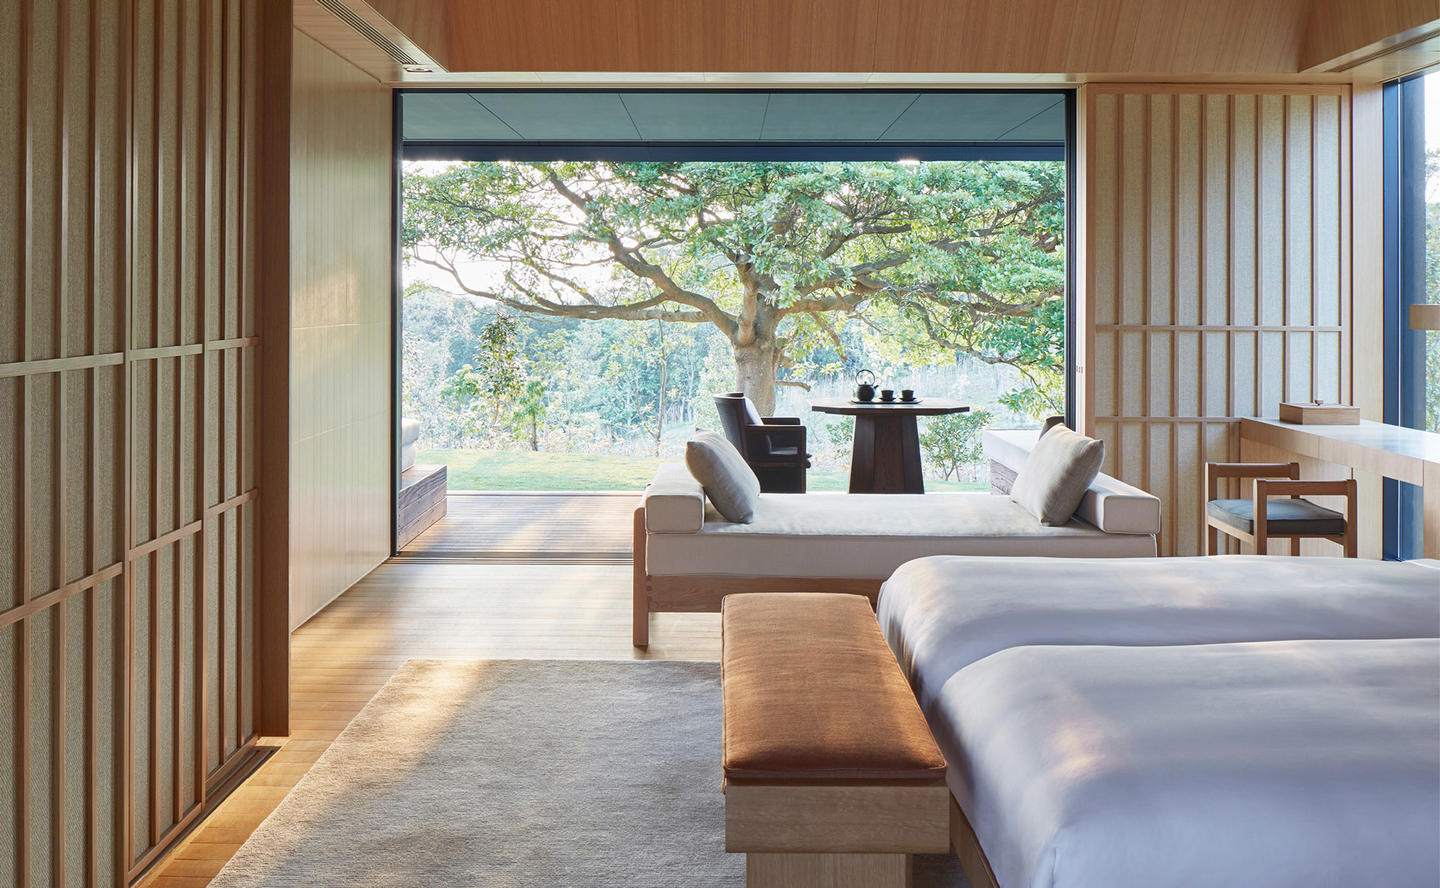 Bedroom, Mori Suite - Amanemu, Japan